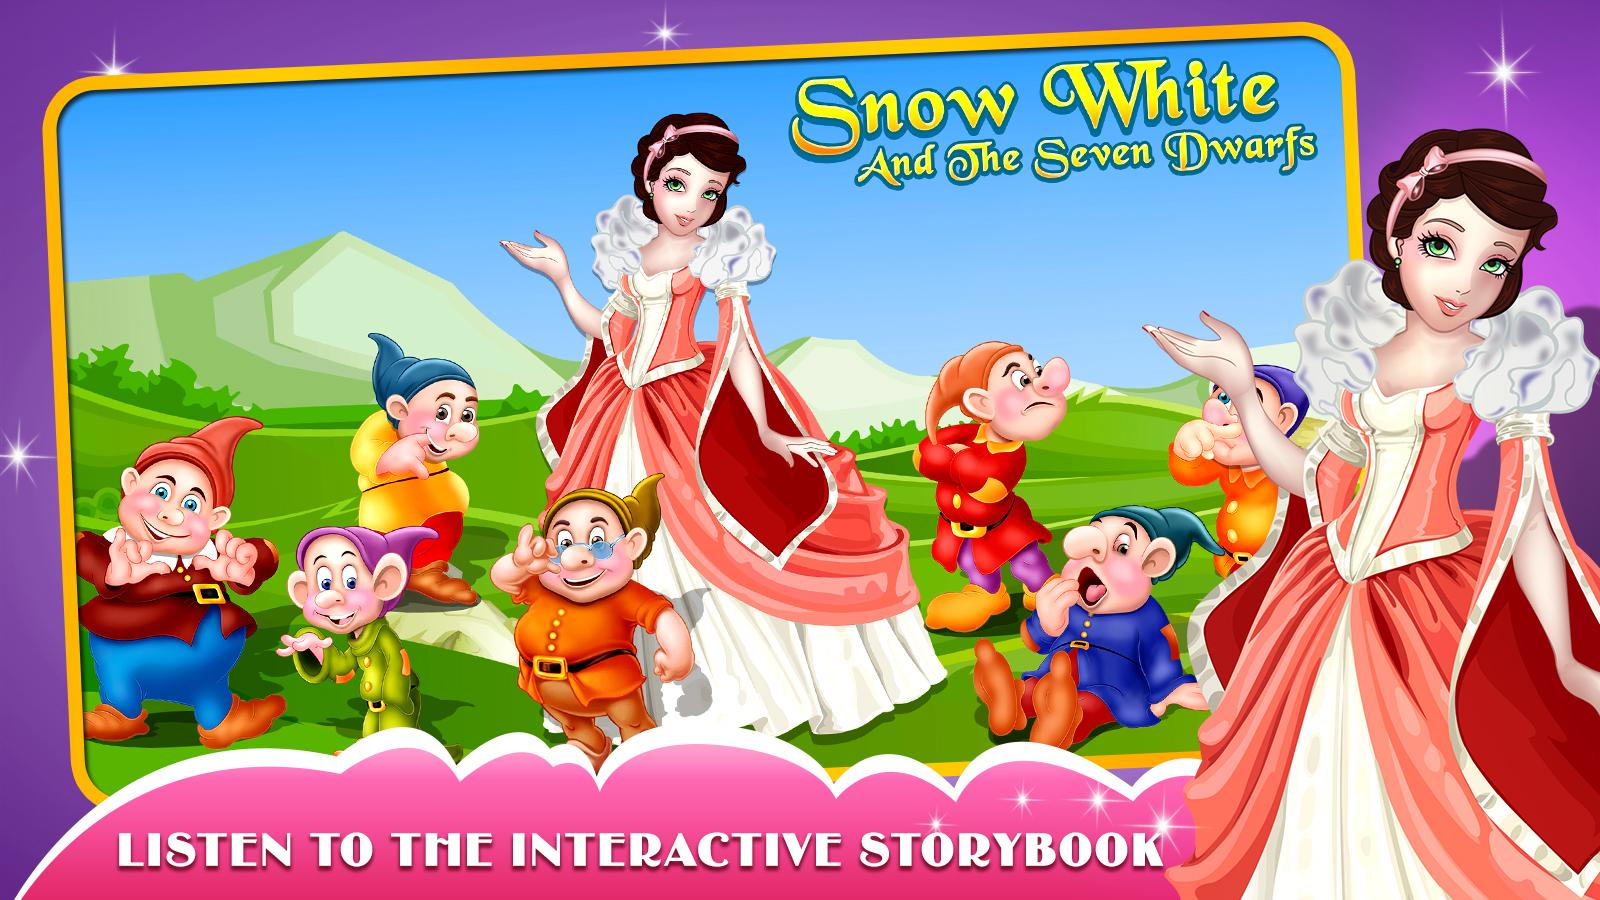 Snow white and the seven dwarfs story  erotic scene